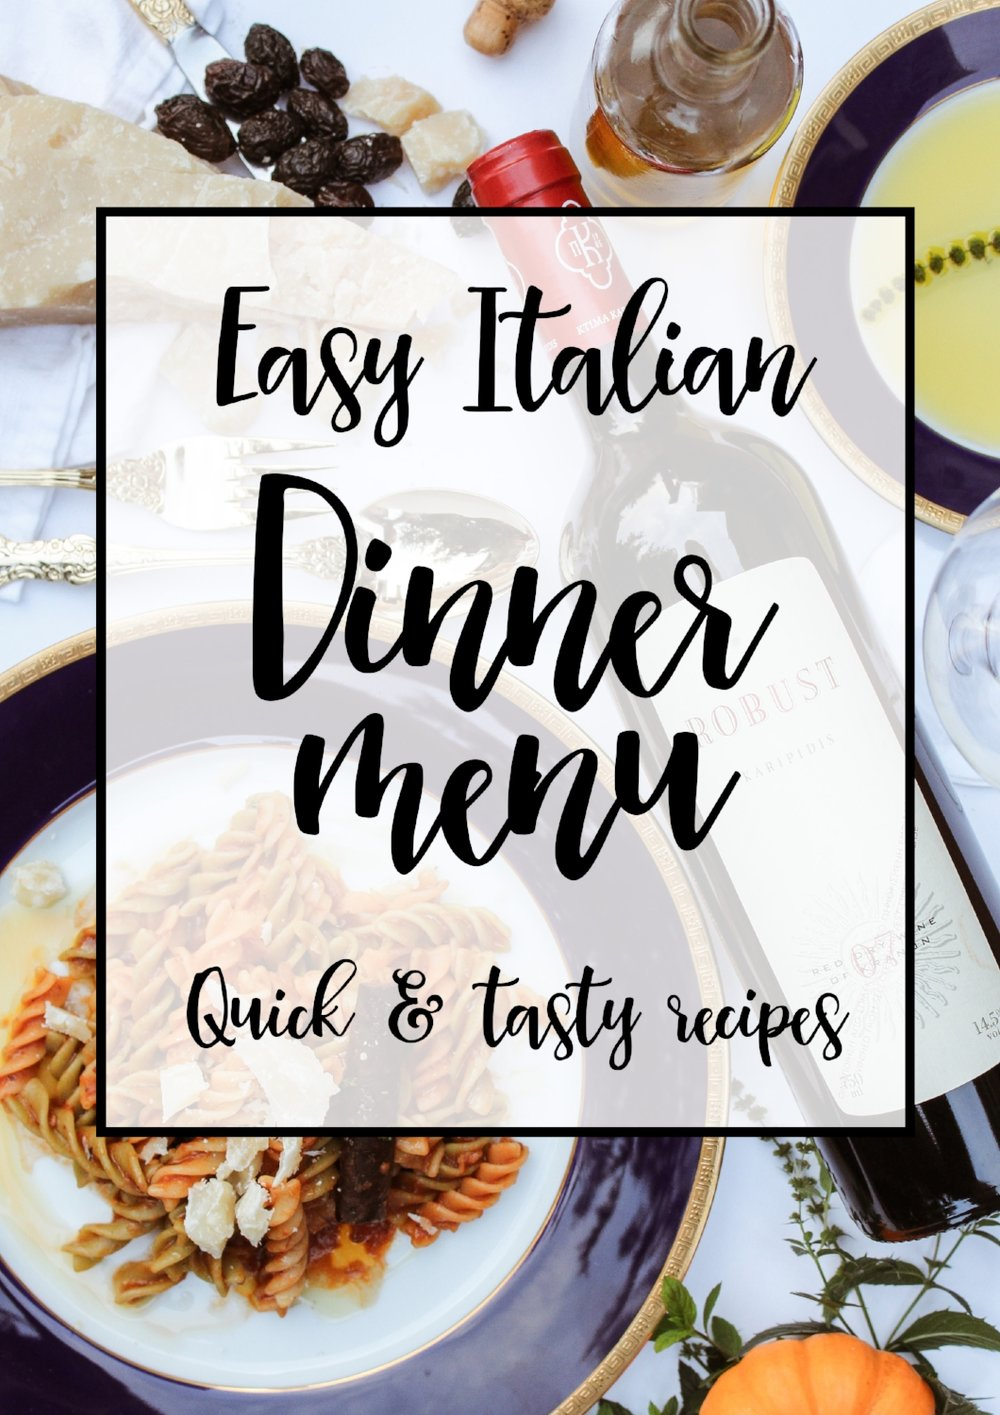 Easy Italian entertaining, 29&September